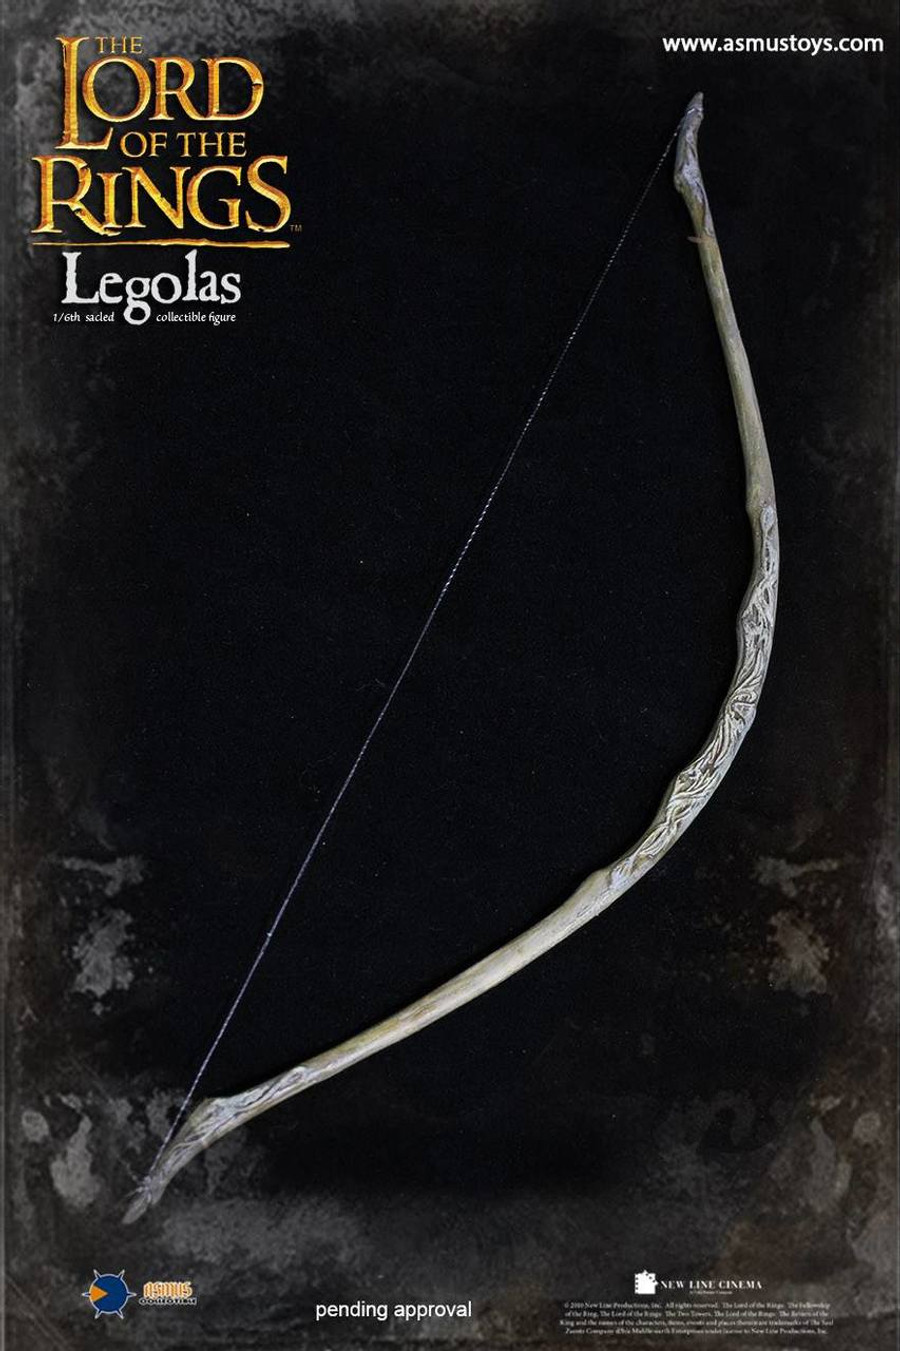 Asmus Toys - The Lord of the Rings Series: Legolas Luxury Edition